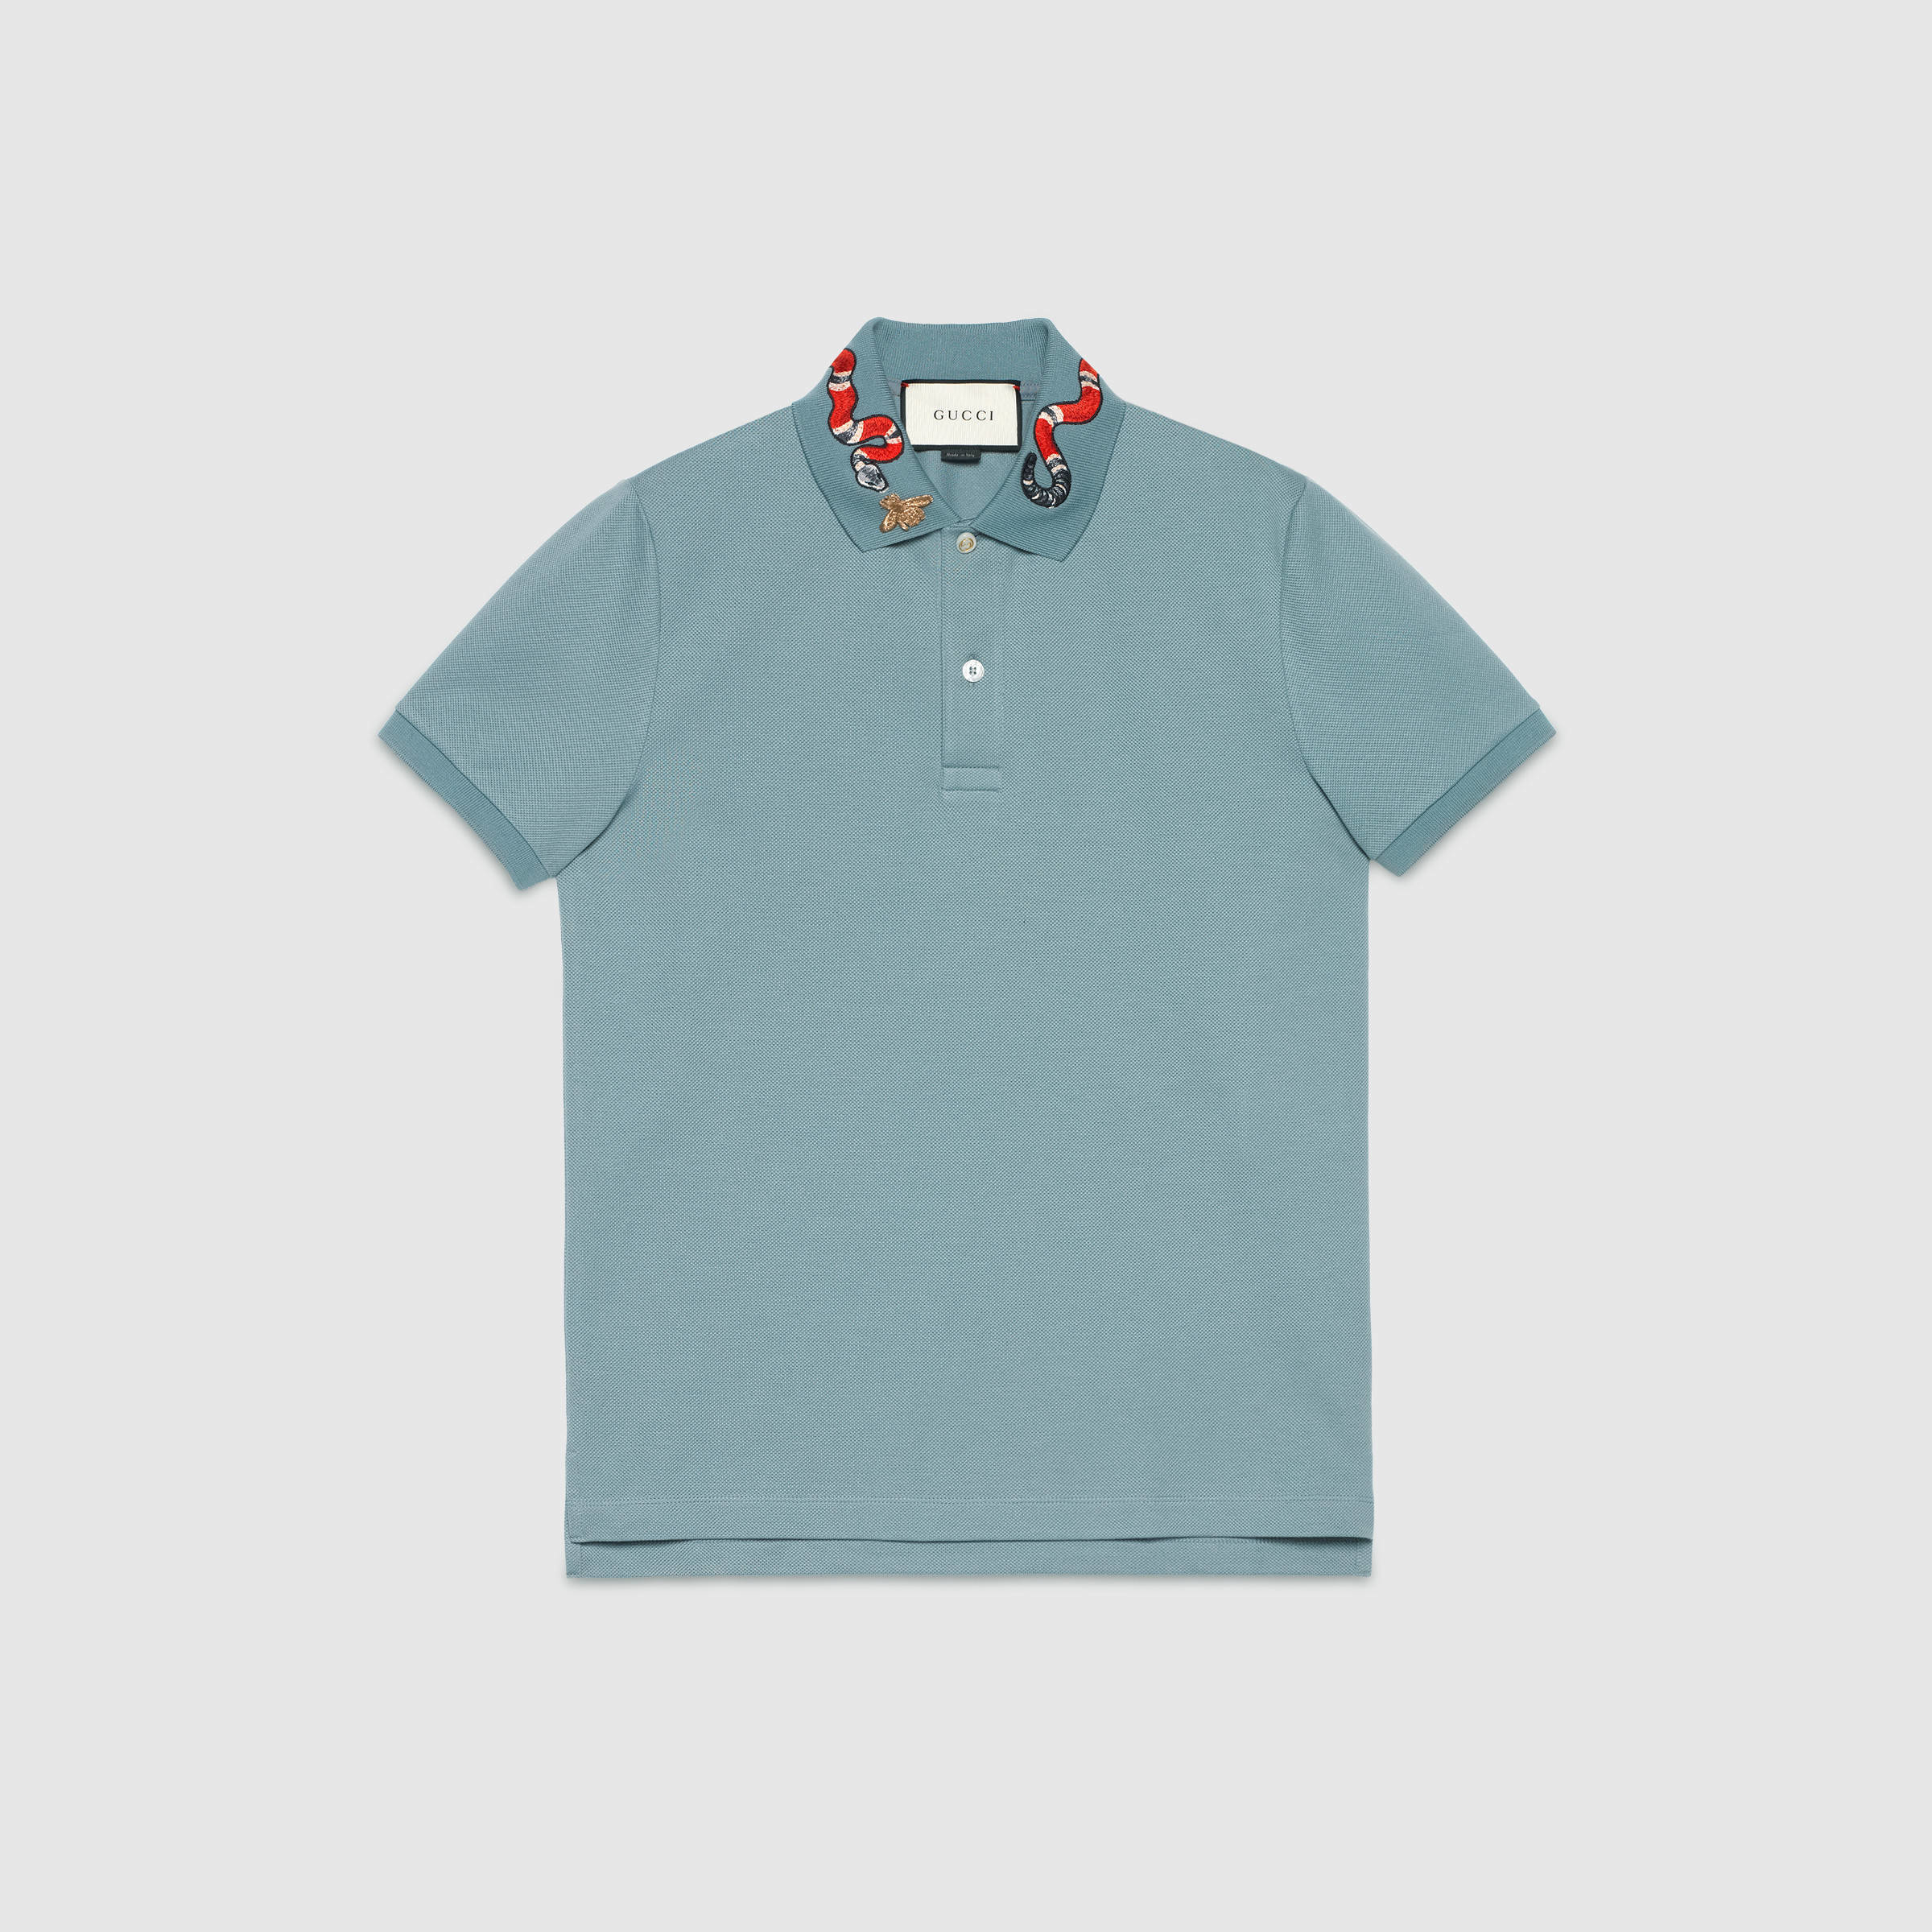 80b6f39f8f35 Gucci Cotton Polo With Snake Embroidery in Blue for Men - Lyst